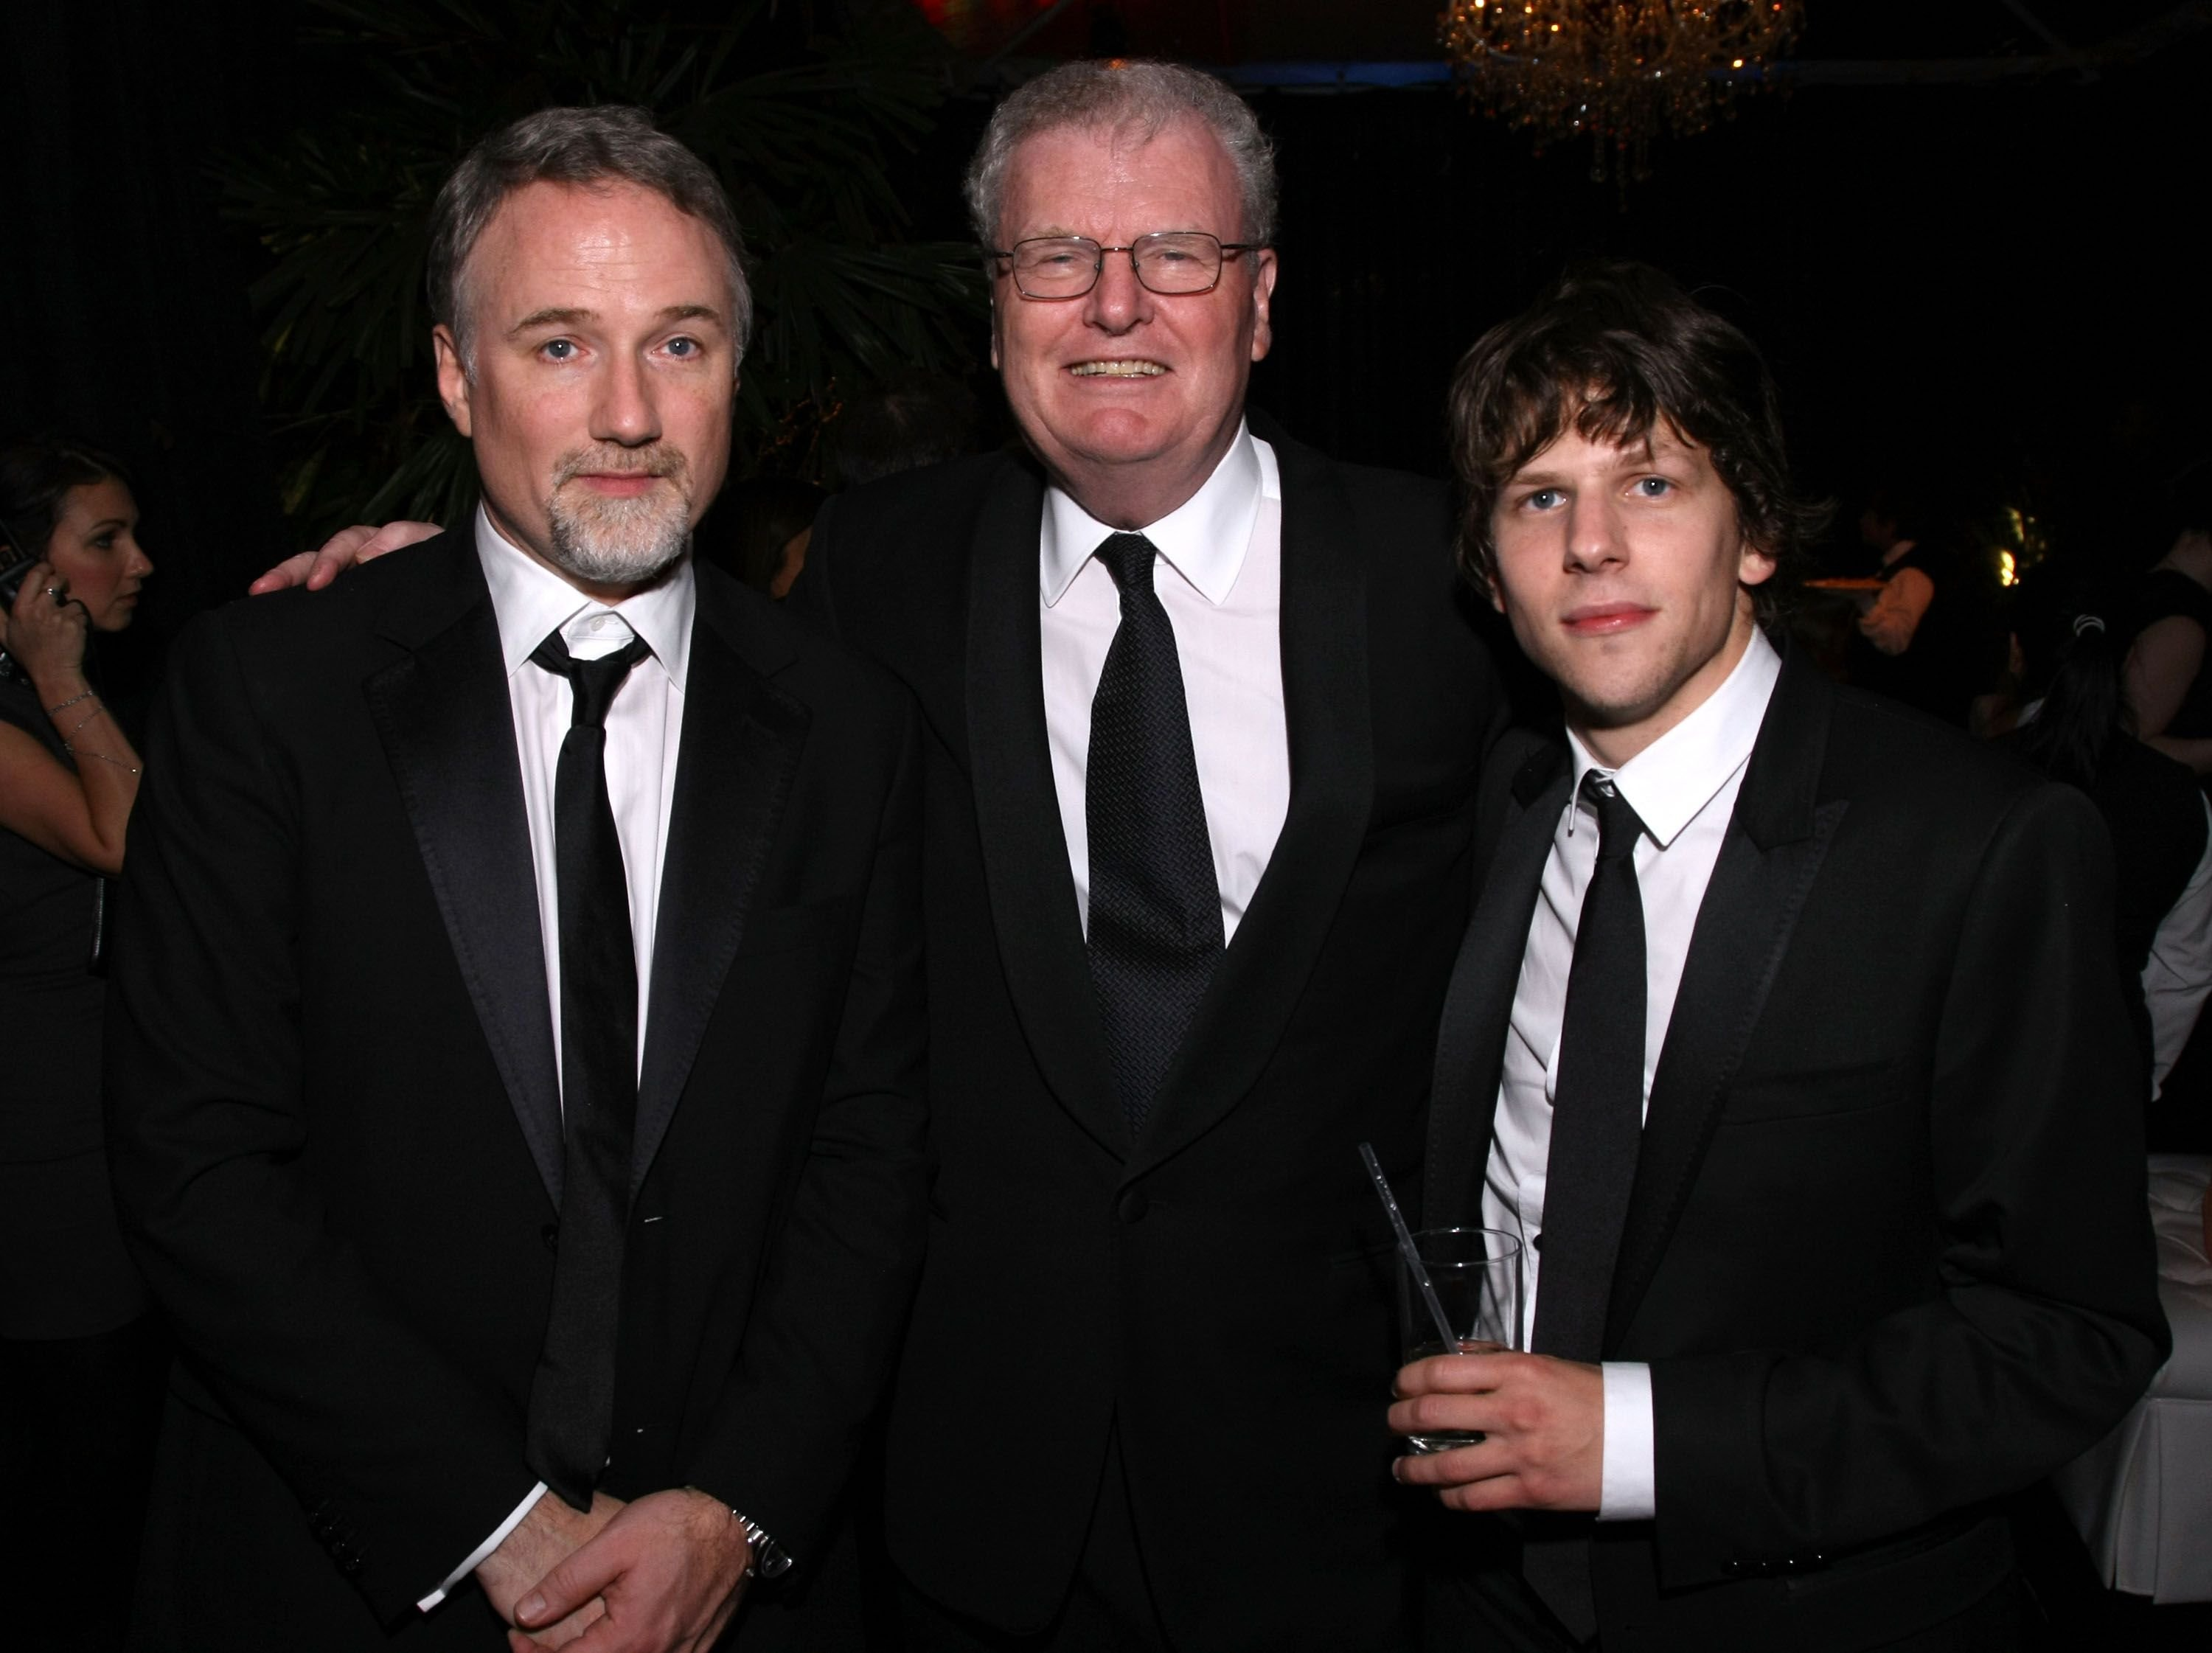 David Fincher, Sir Howard Stringer and actor Jesse Eisenberg at 68th Annual Golden Globe Awards Party held in 2011 in Beverly Hills   Source: Getty Images